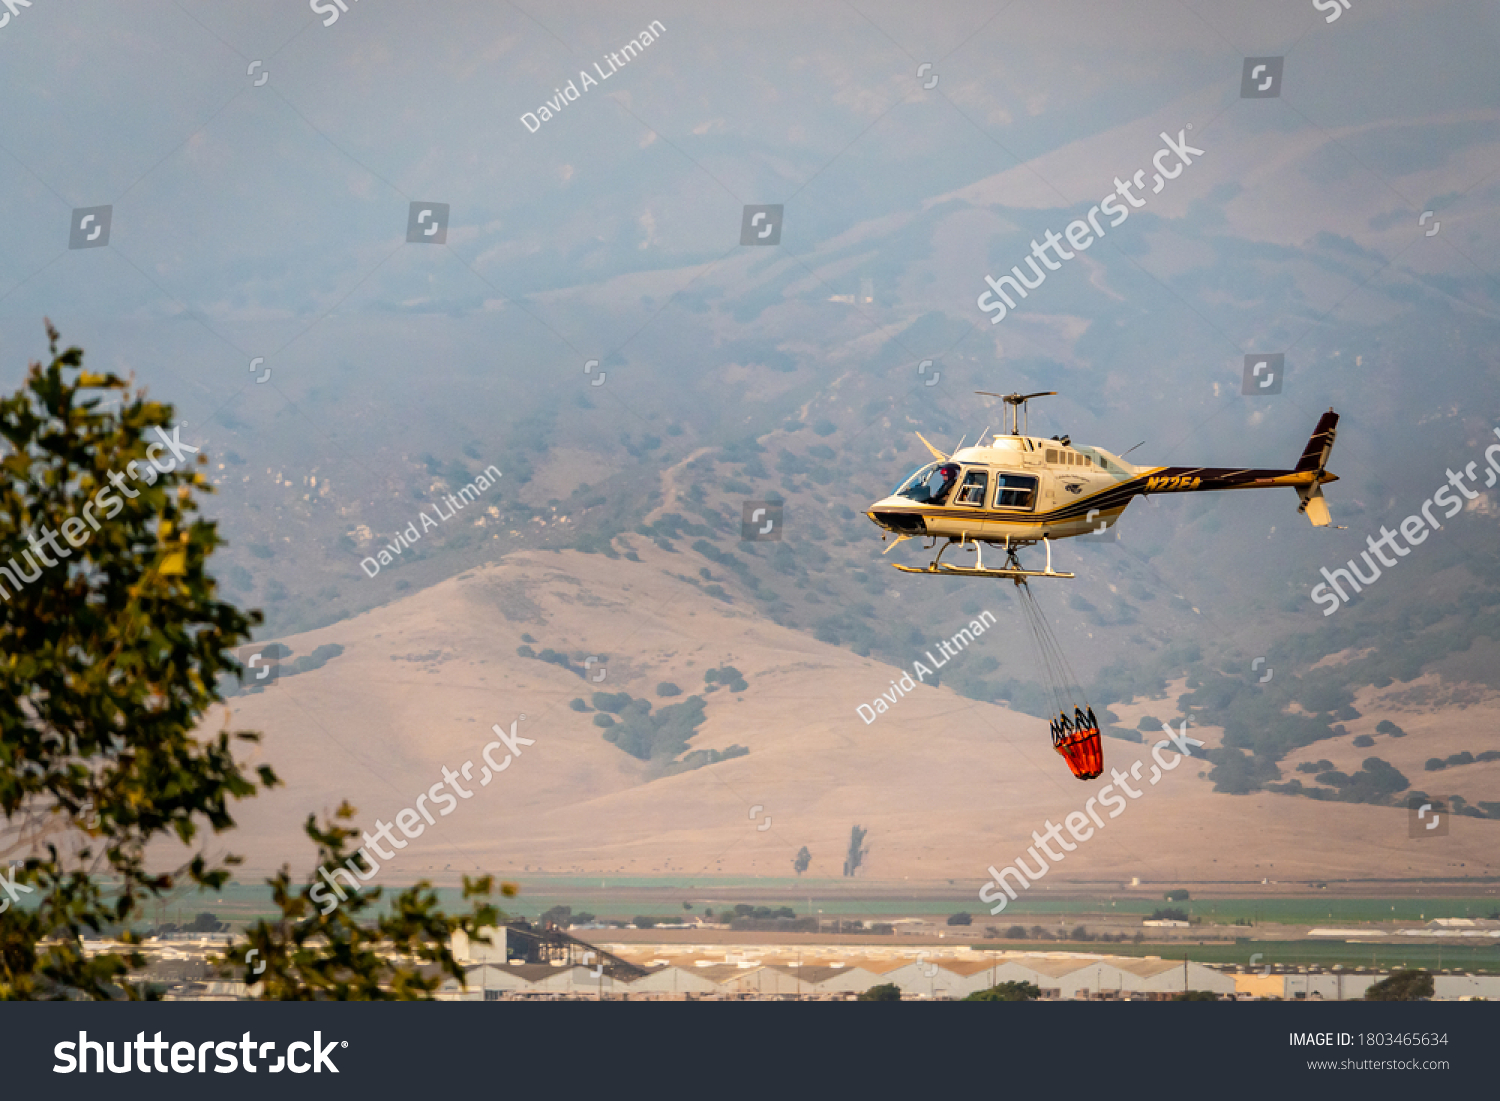 """Salinas, California - August 17, 2020:  A Cal Fire helicopter pilot carries a bucket of water to douse the """"River Fire"""" in the hills of the Salinas Valley of Monterey County of the central coast."""